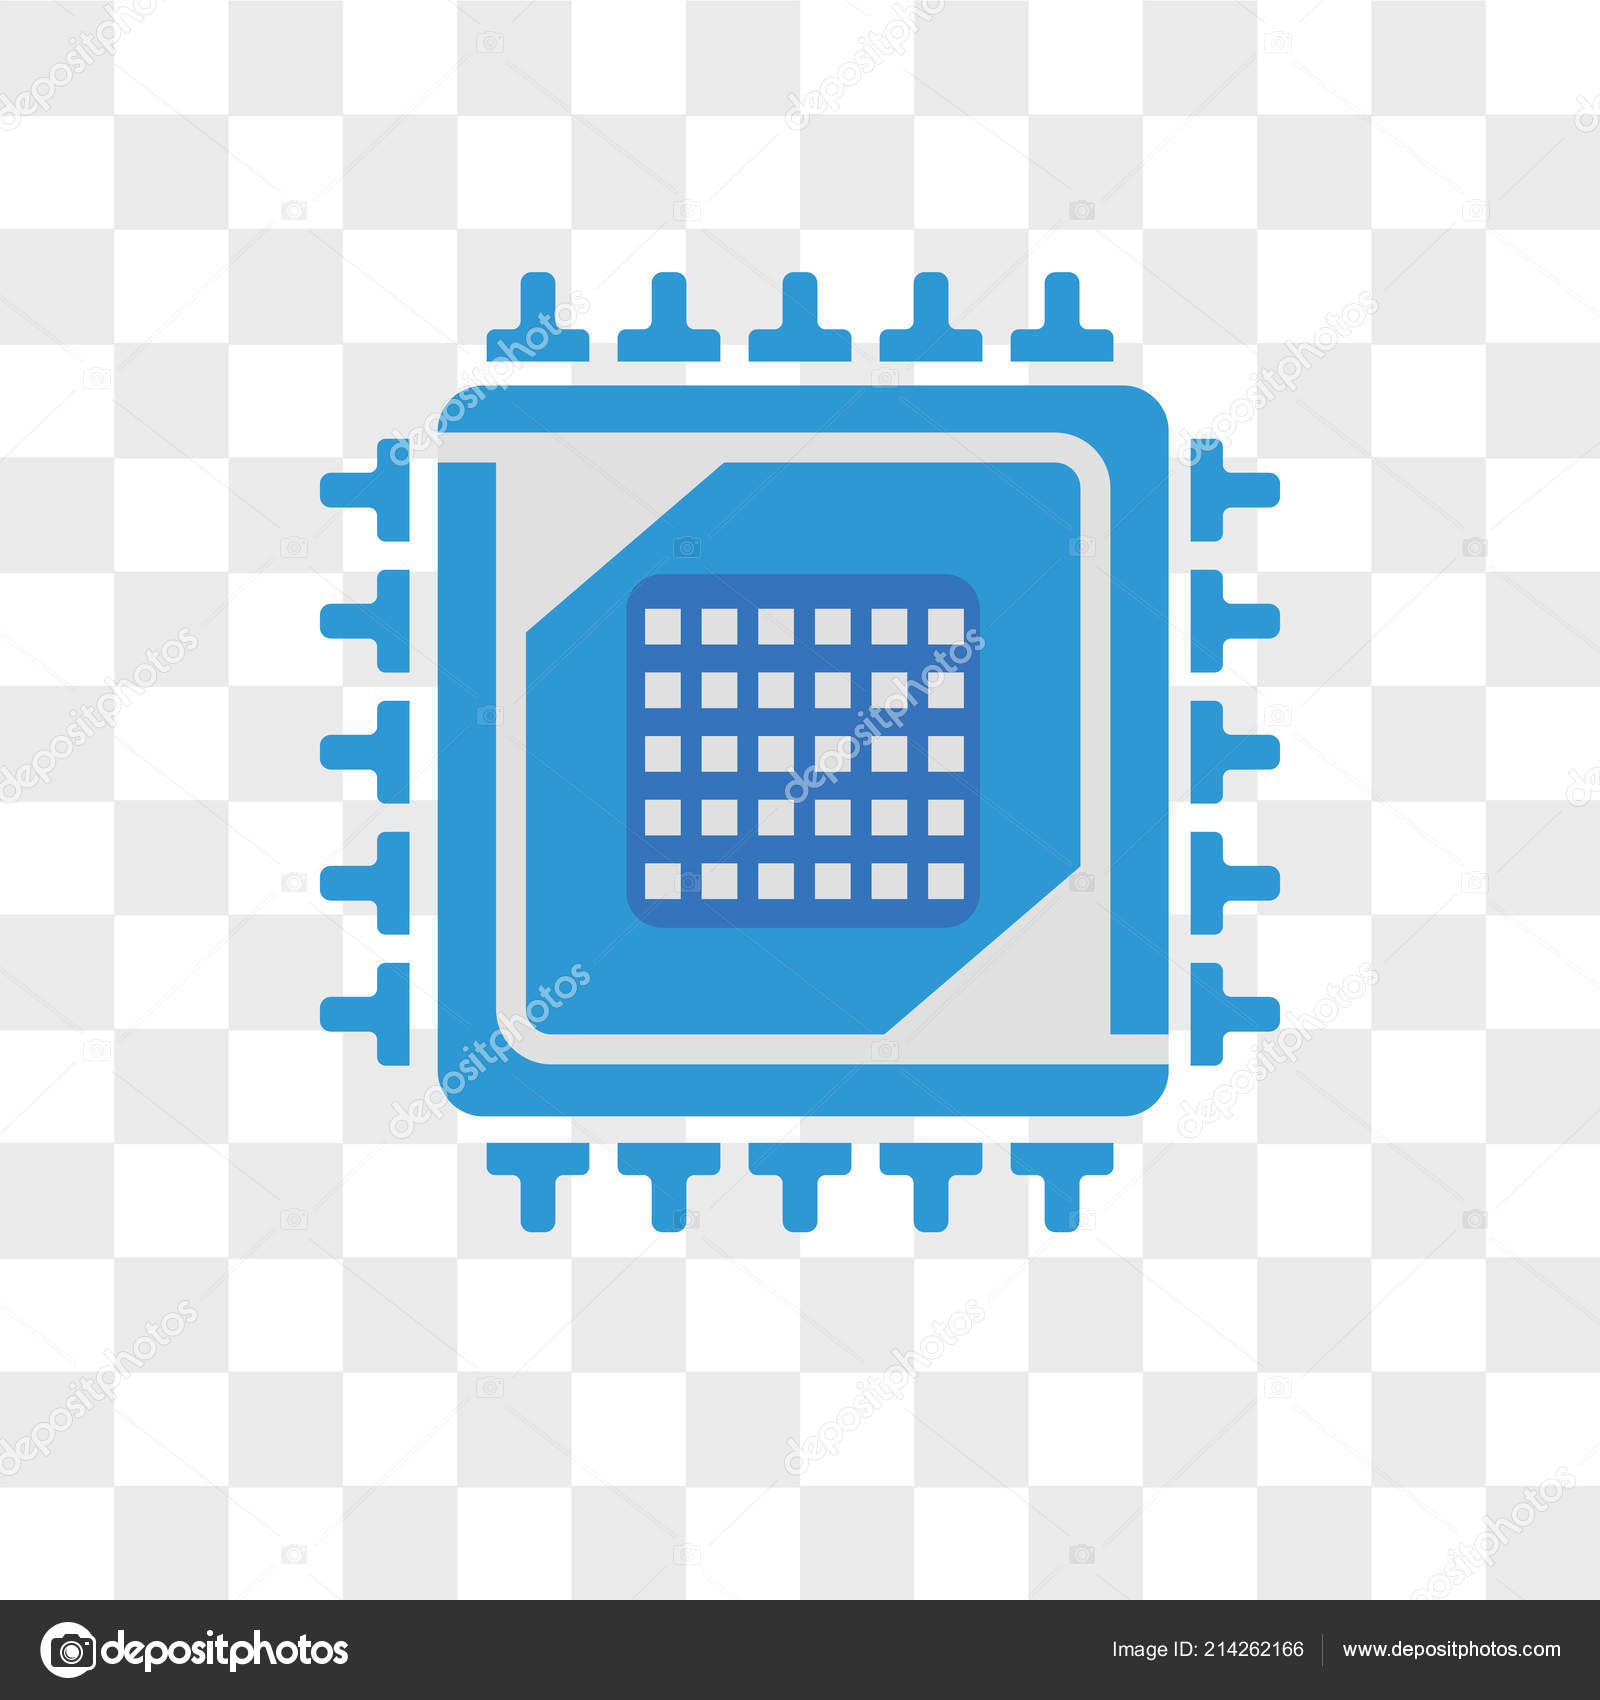 cpu vector icon isolated on transparent background cpu logo des stock vector c provectorstock 214262166 https depositphotos com 214262166 stock illustration cpu vector icon isolated on html